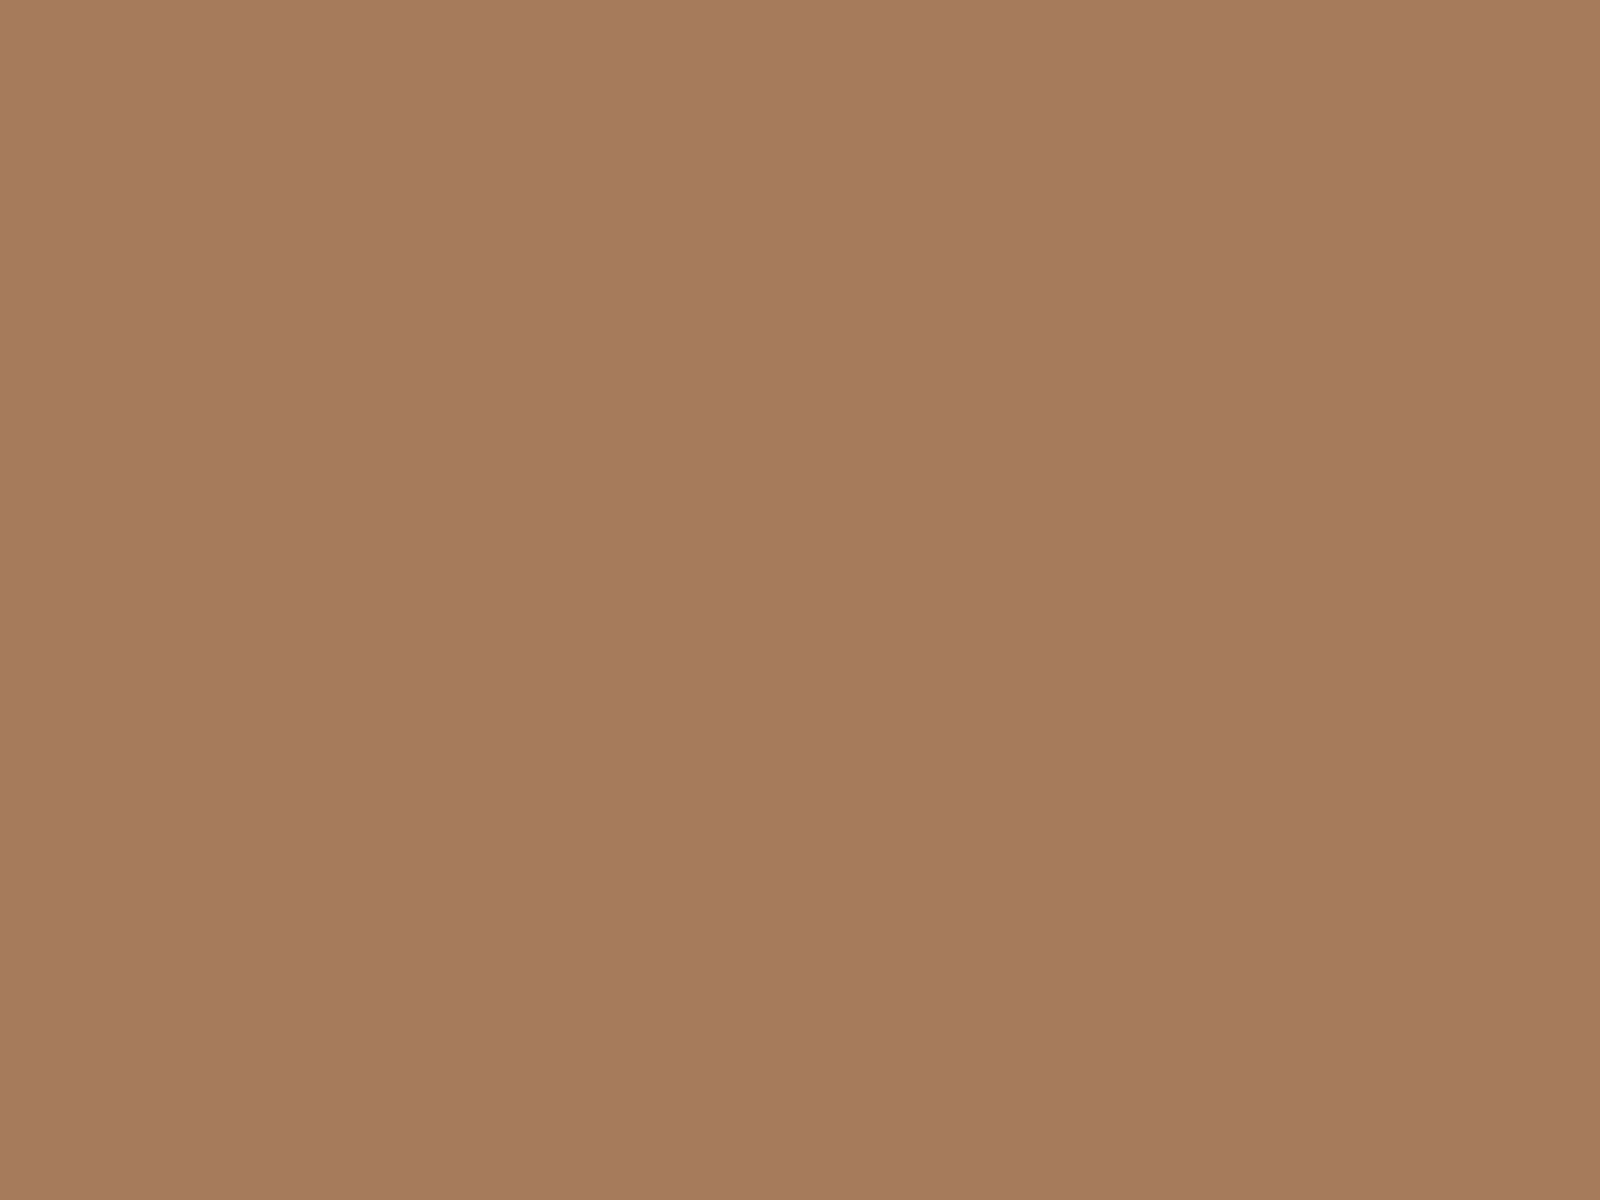 1600x1200 Tuscan Tan Solid Color Background